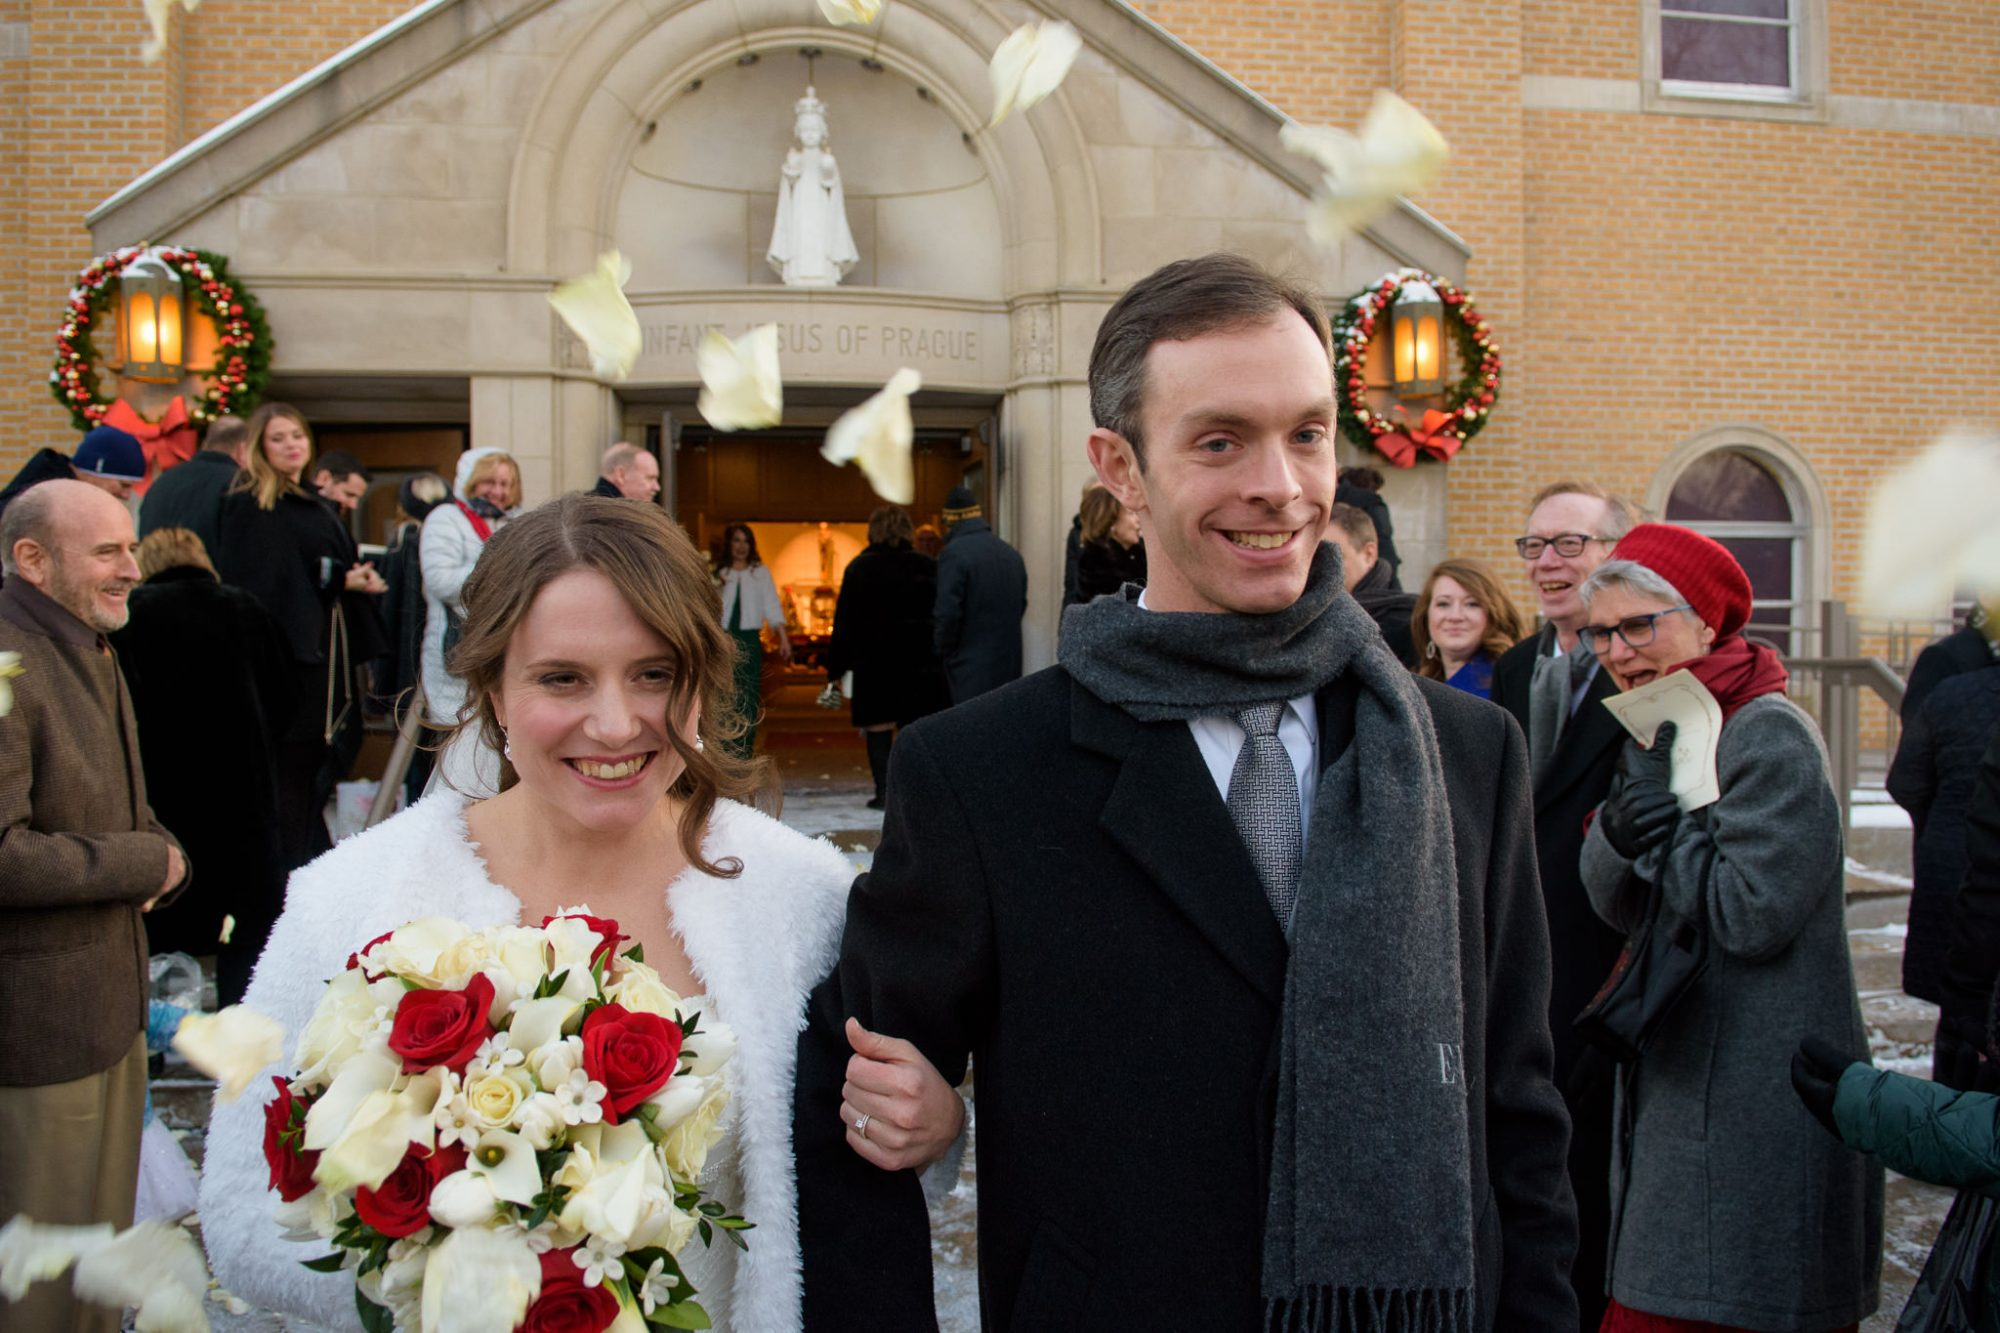 Bride Groom church wedding winter